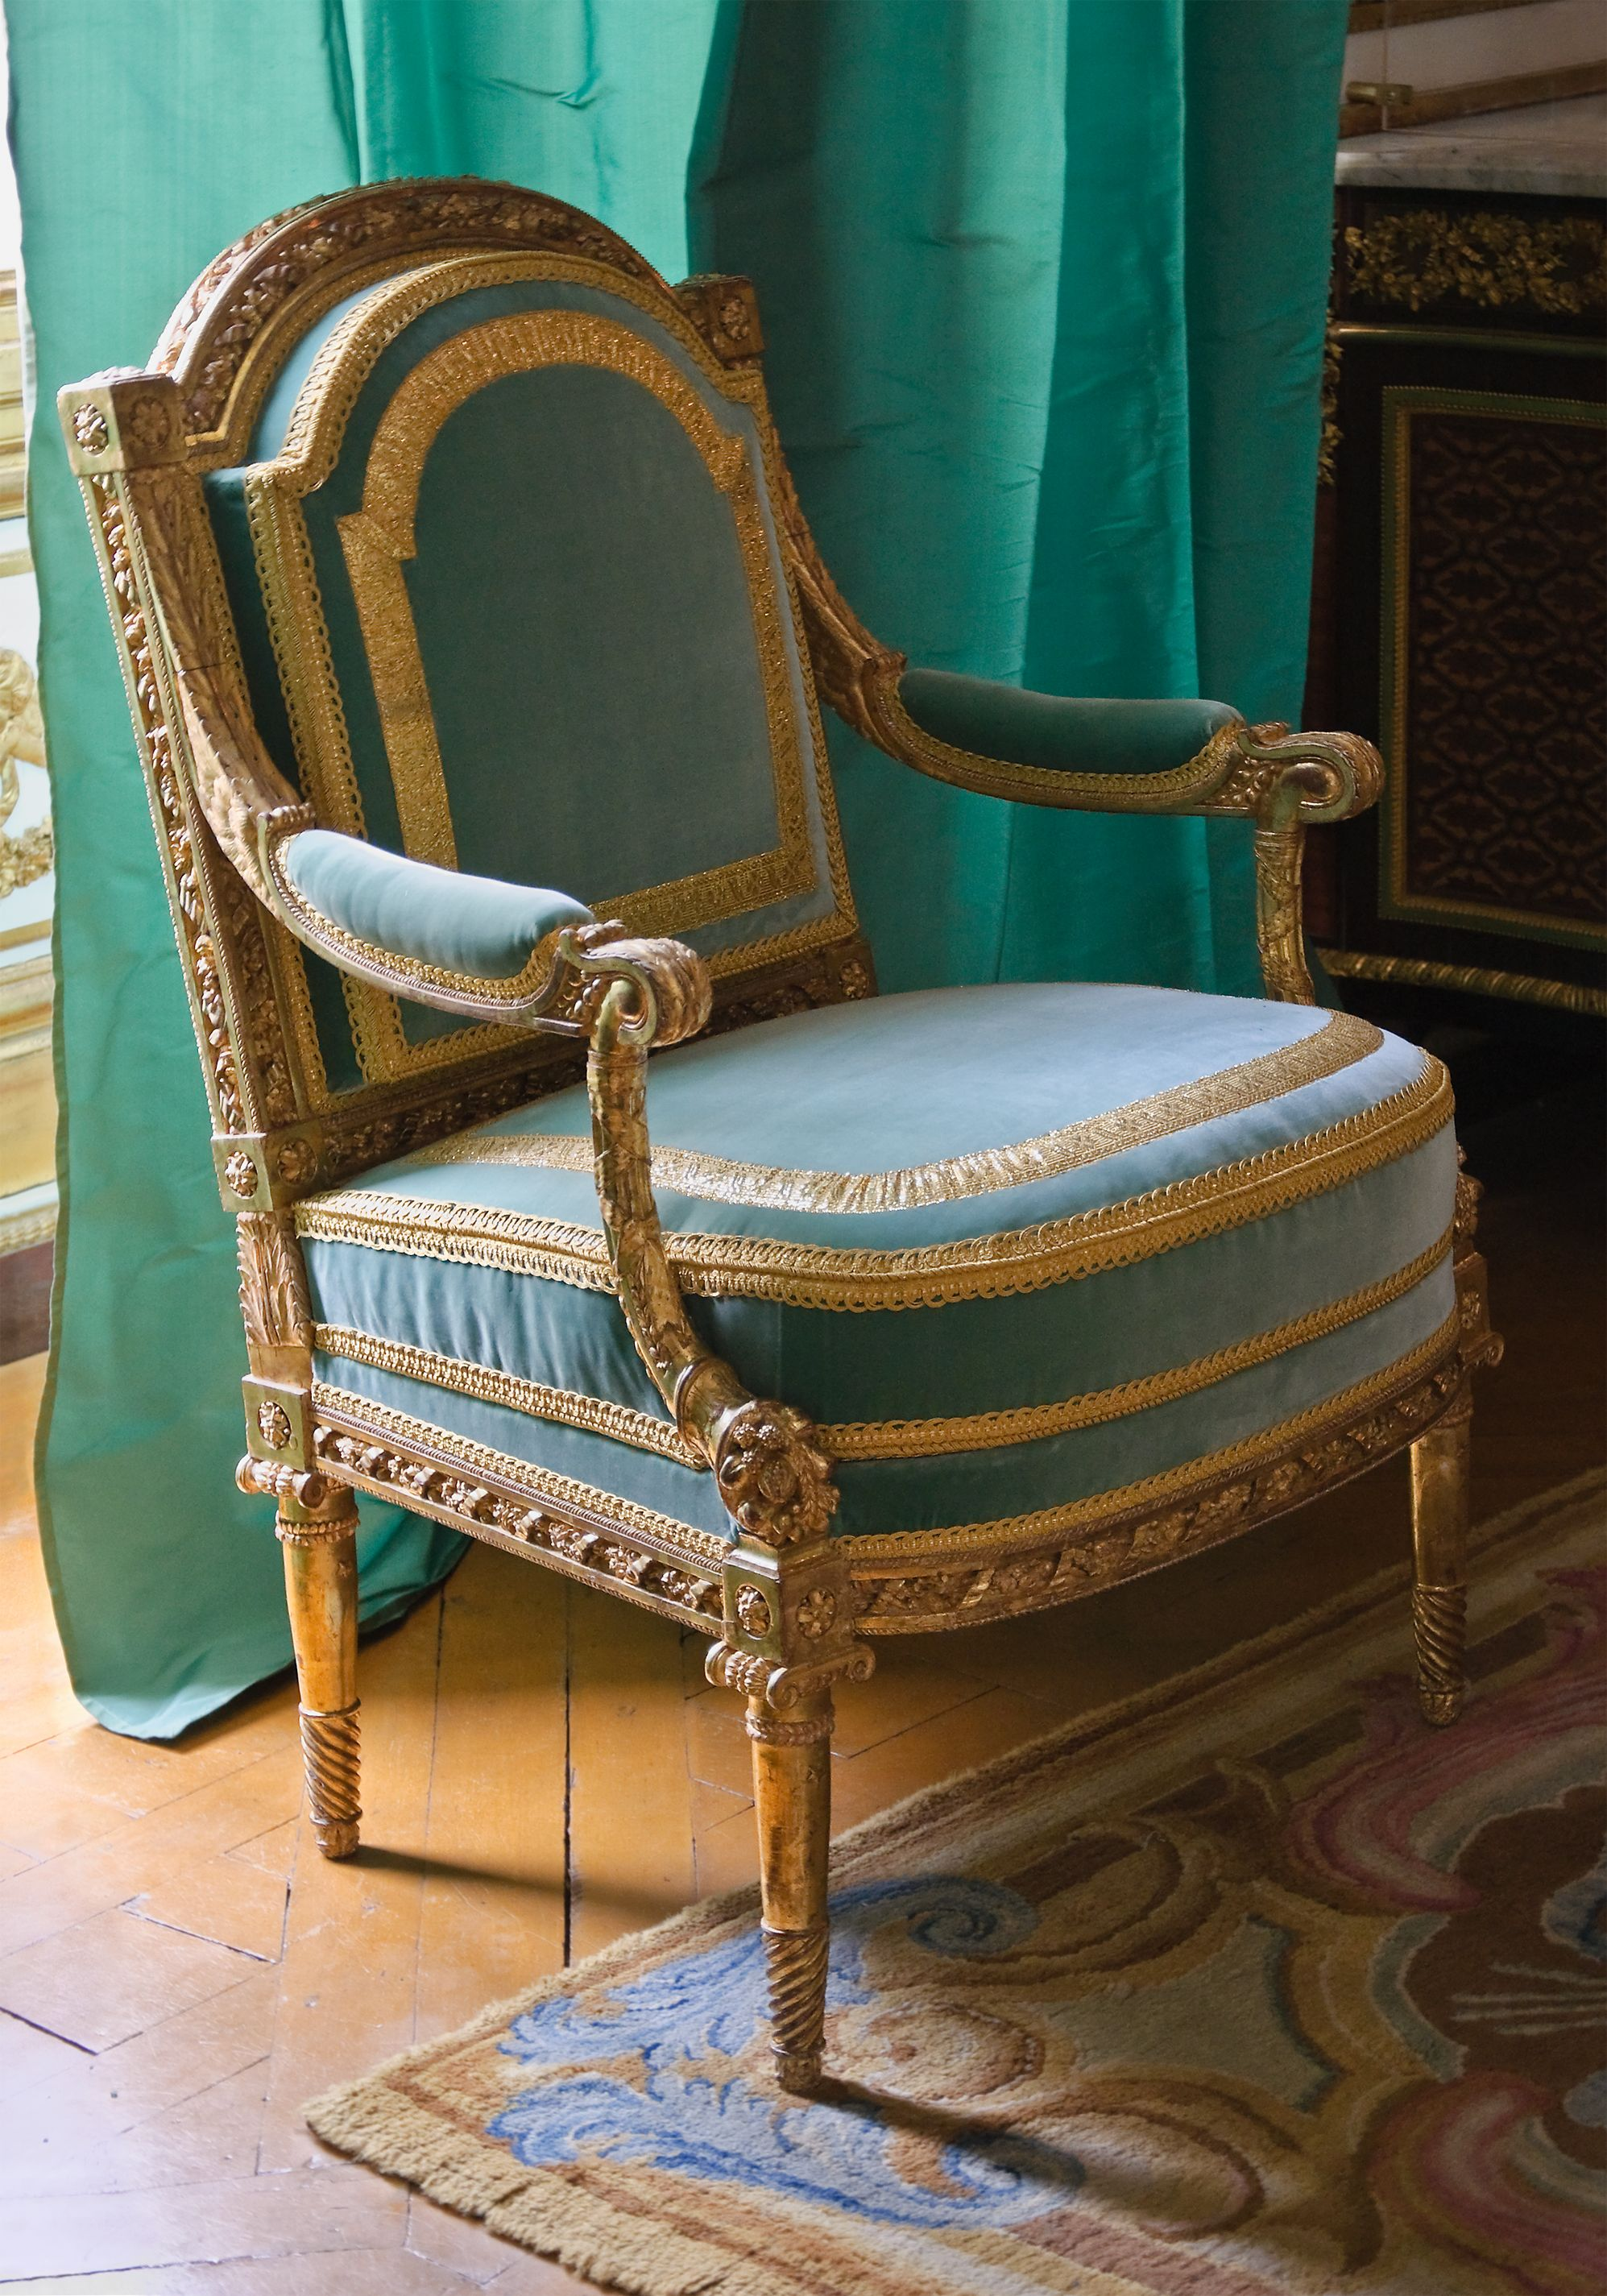 histoire du design louis xvi marie era of style and design pinterest antike m bel. Black Bedroom Furniture Sets. Home Design Ideas